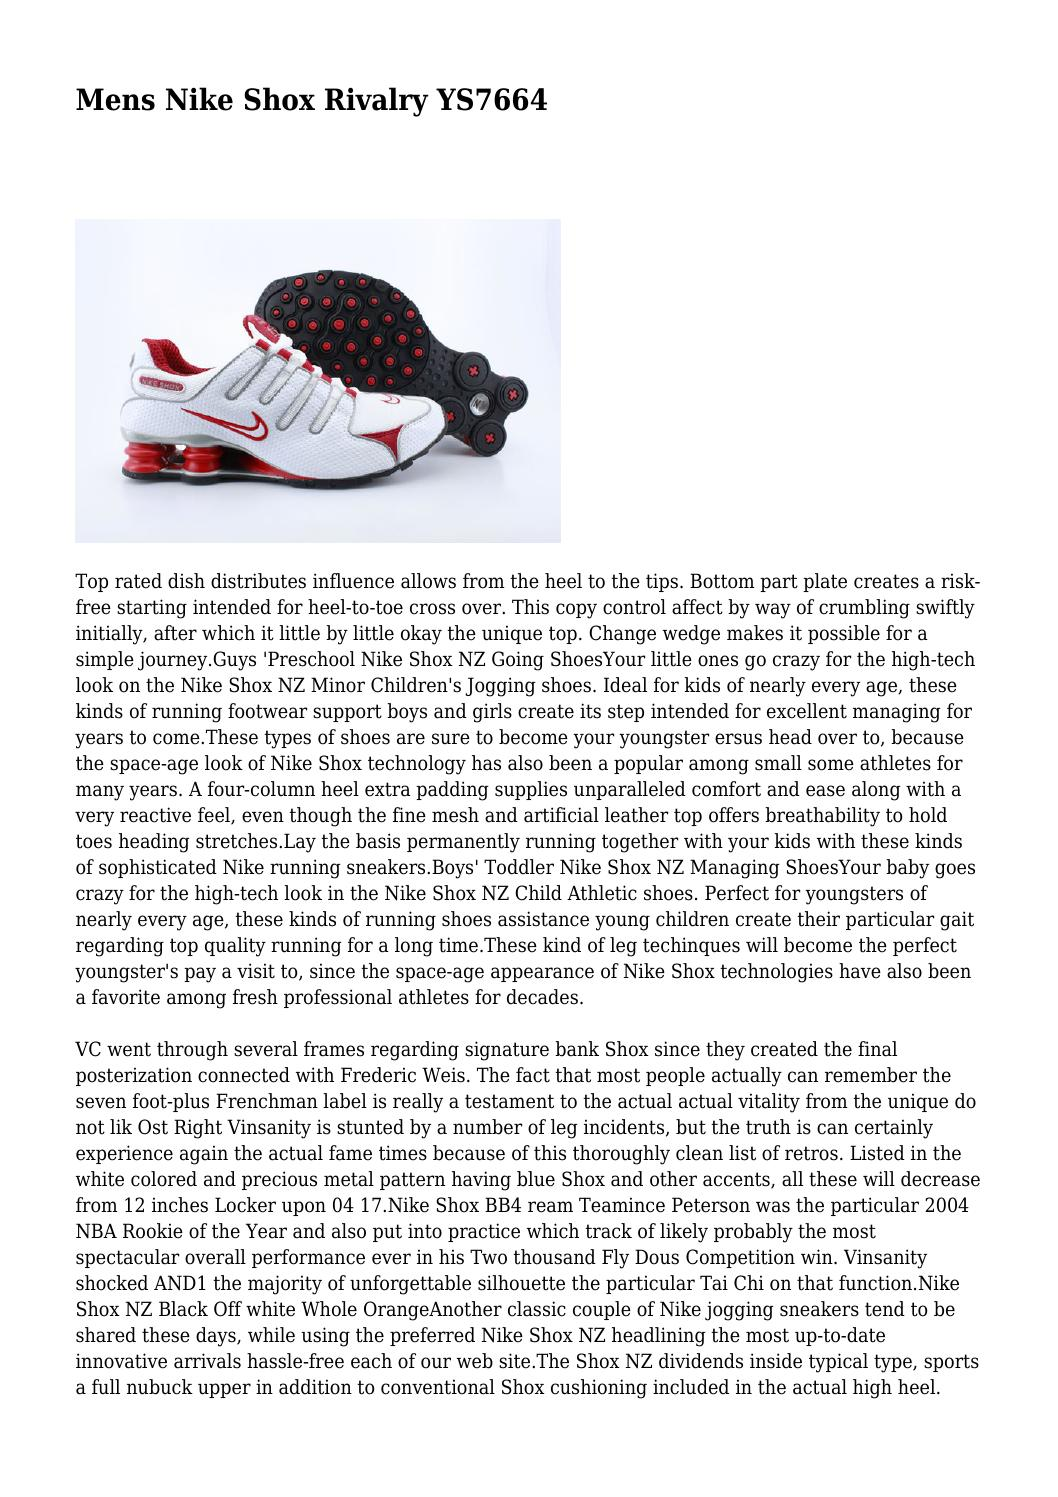 preschool nike shox r2 Mens Nike Shox Rivalry YS7664 by rusticdeformity06 - issuu